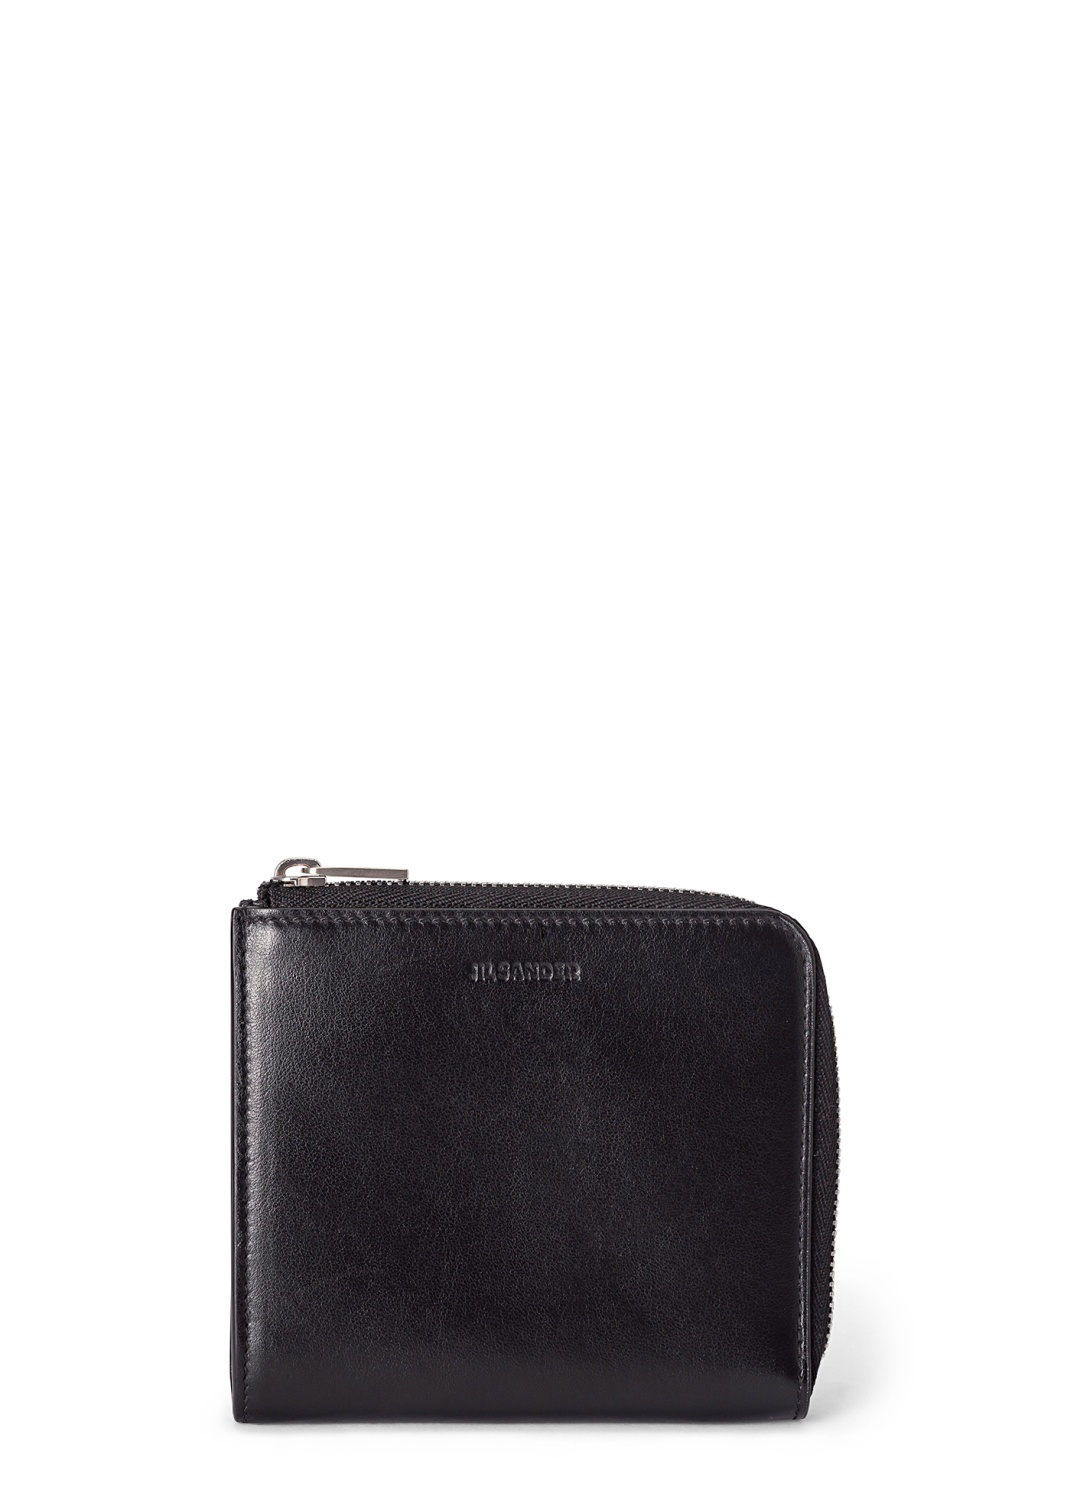 CREDIT CARD PURSE image number 0